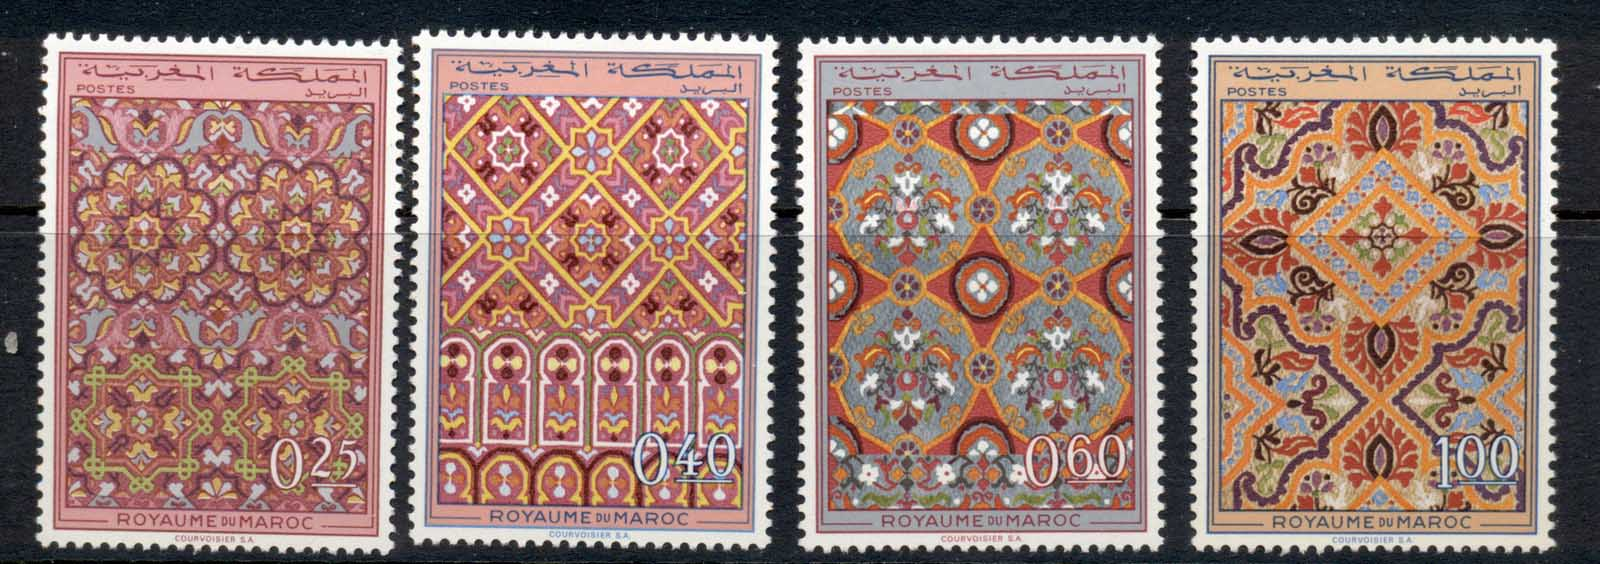 Morocco 1968 Ornamental designs MUH